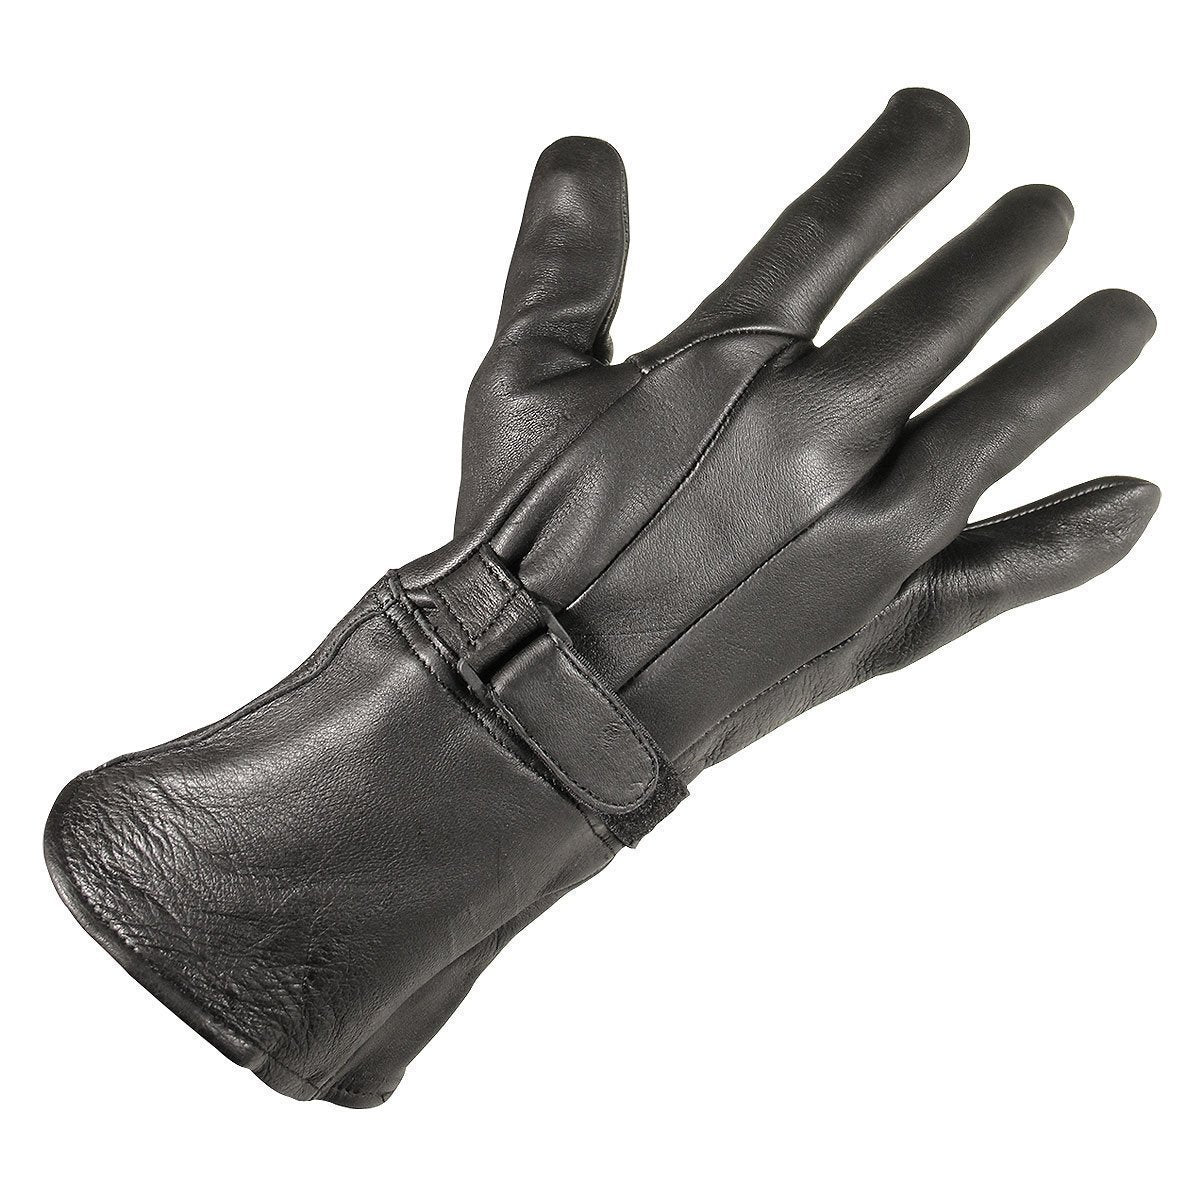 Xelement XG864 Men's Black Deerskin Leather Gauntlet Gloves